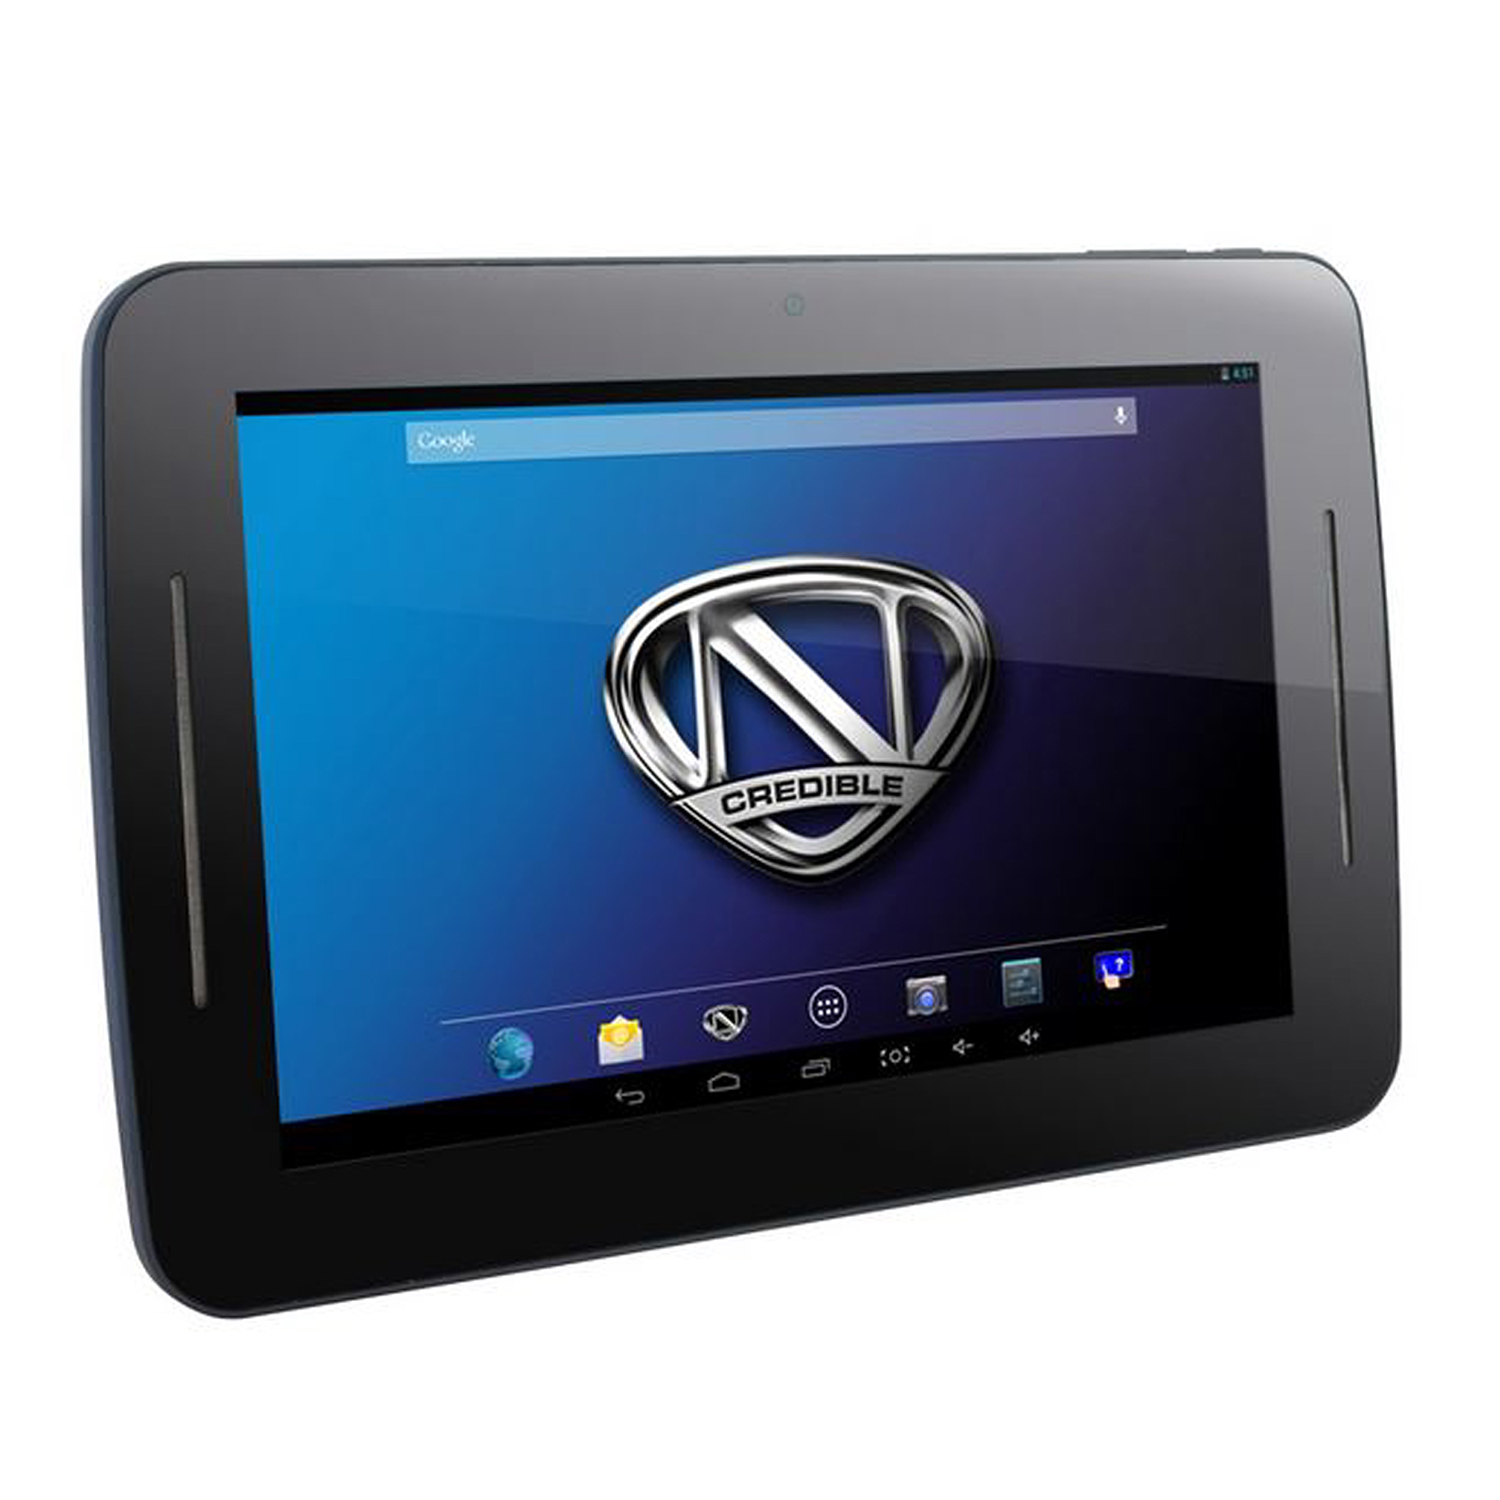 Refurbished Ncredible NV8 8-inch 16GB Android Quad Core Processor 1GB RAM Wi-Fi  HD Tablet